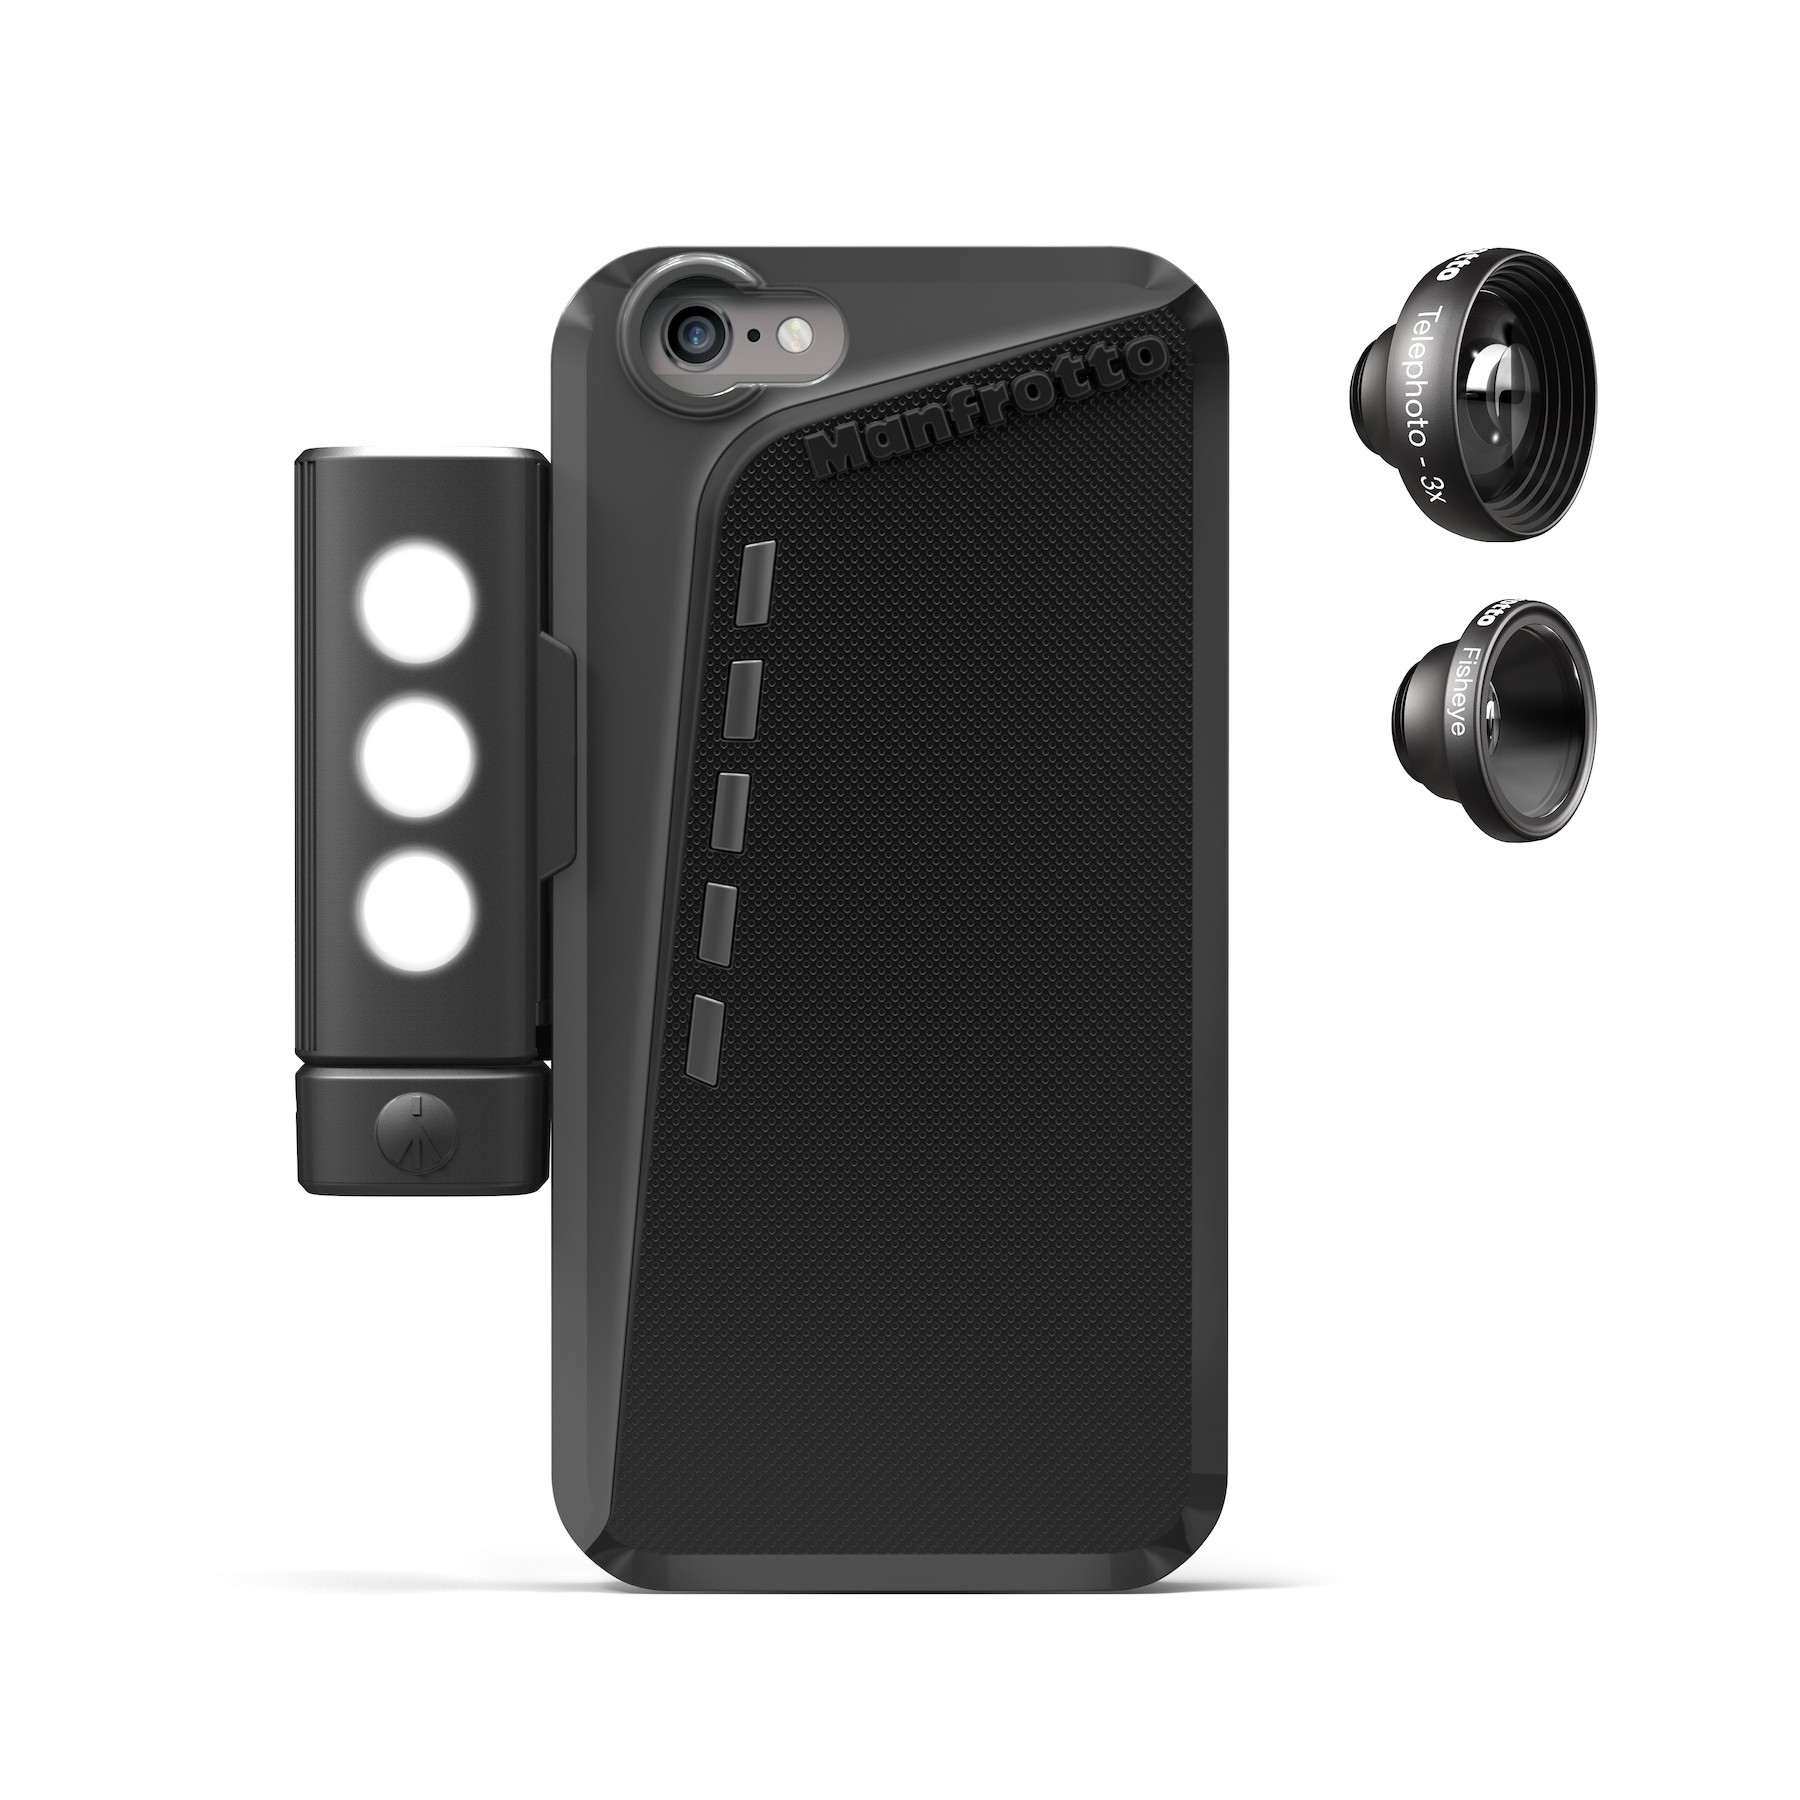 Manfrotto Klyp Complete Kit iPhone 6